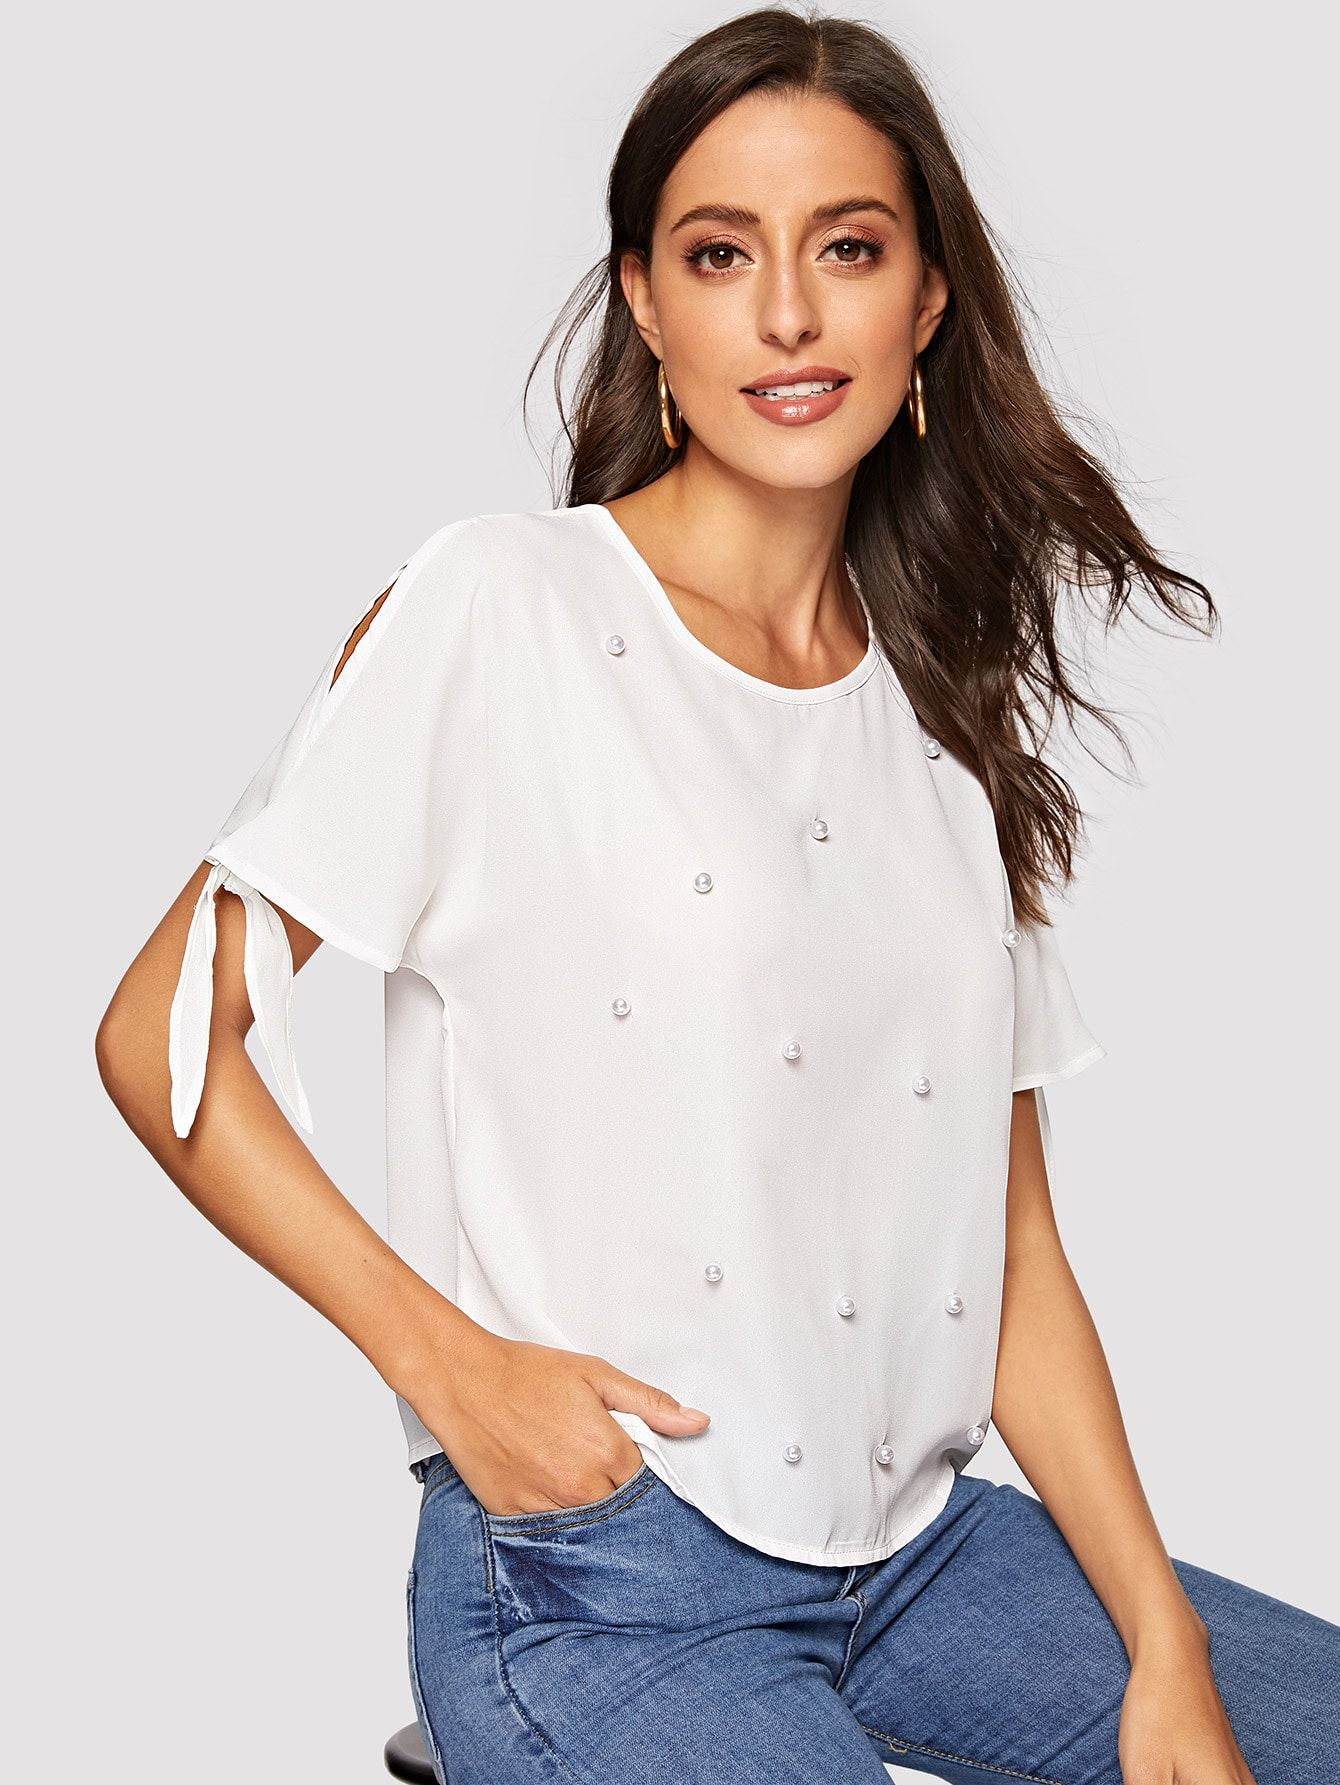 Casual Plain Top Regular Fit Round Neck Short Sleeve Split Sleeve Pullovers White Regular Length Pearls Beaded Split Knot Cuff Top In 2020 Cuffed Top Plain Tops Blouses For Women